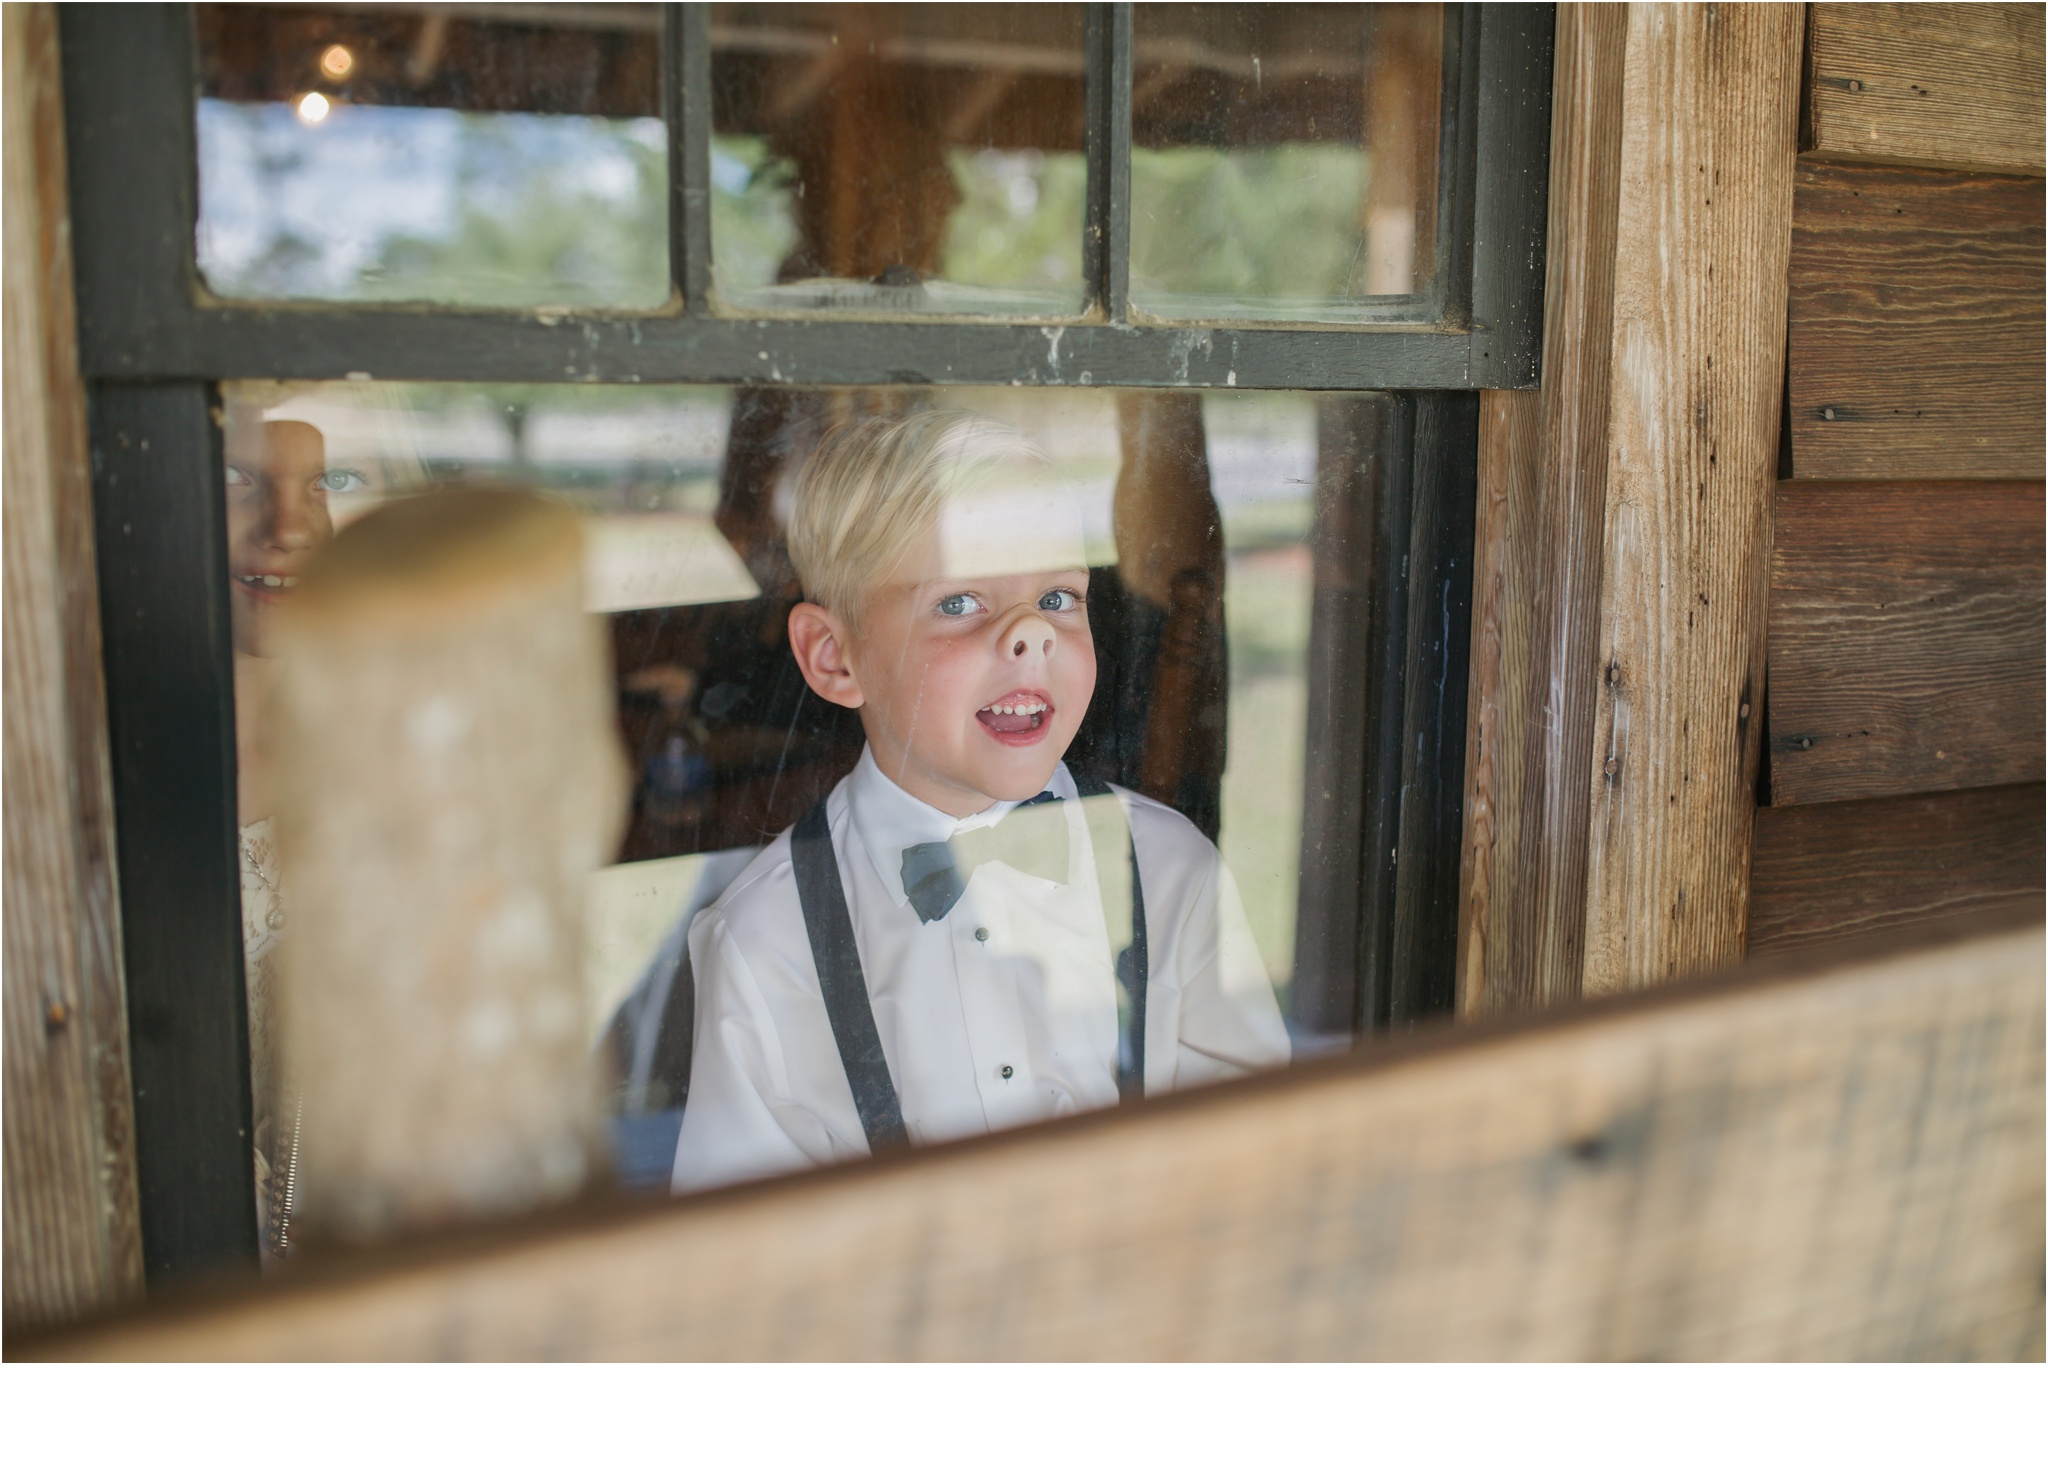 Rainey_Gregg_Photography_St._Simons_Island_Georgia_California_Wedding_Portrait_Photography_0849.jpg